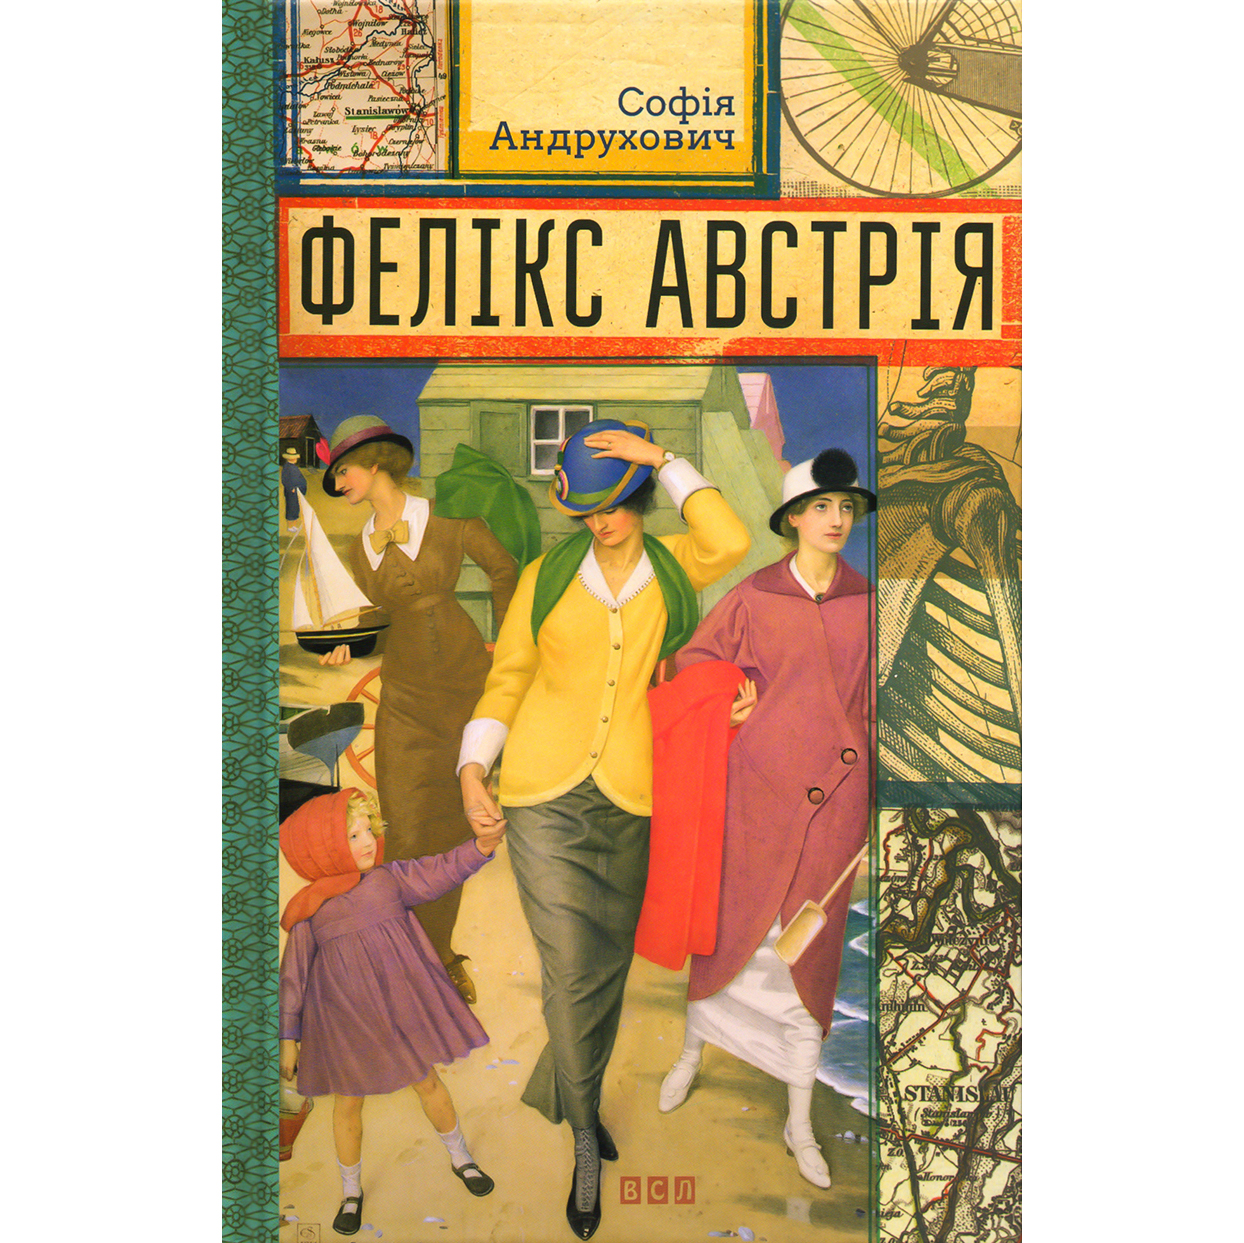 Купити книгу Фелікс Австрія, Софія Андрухович | Bukio